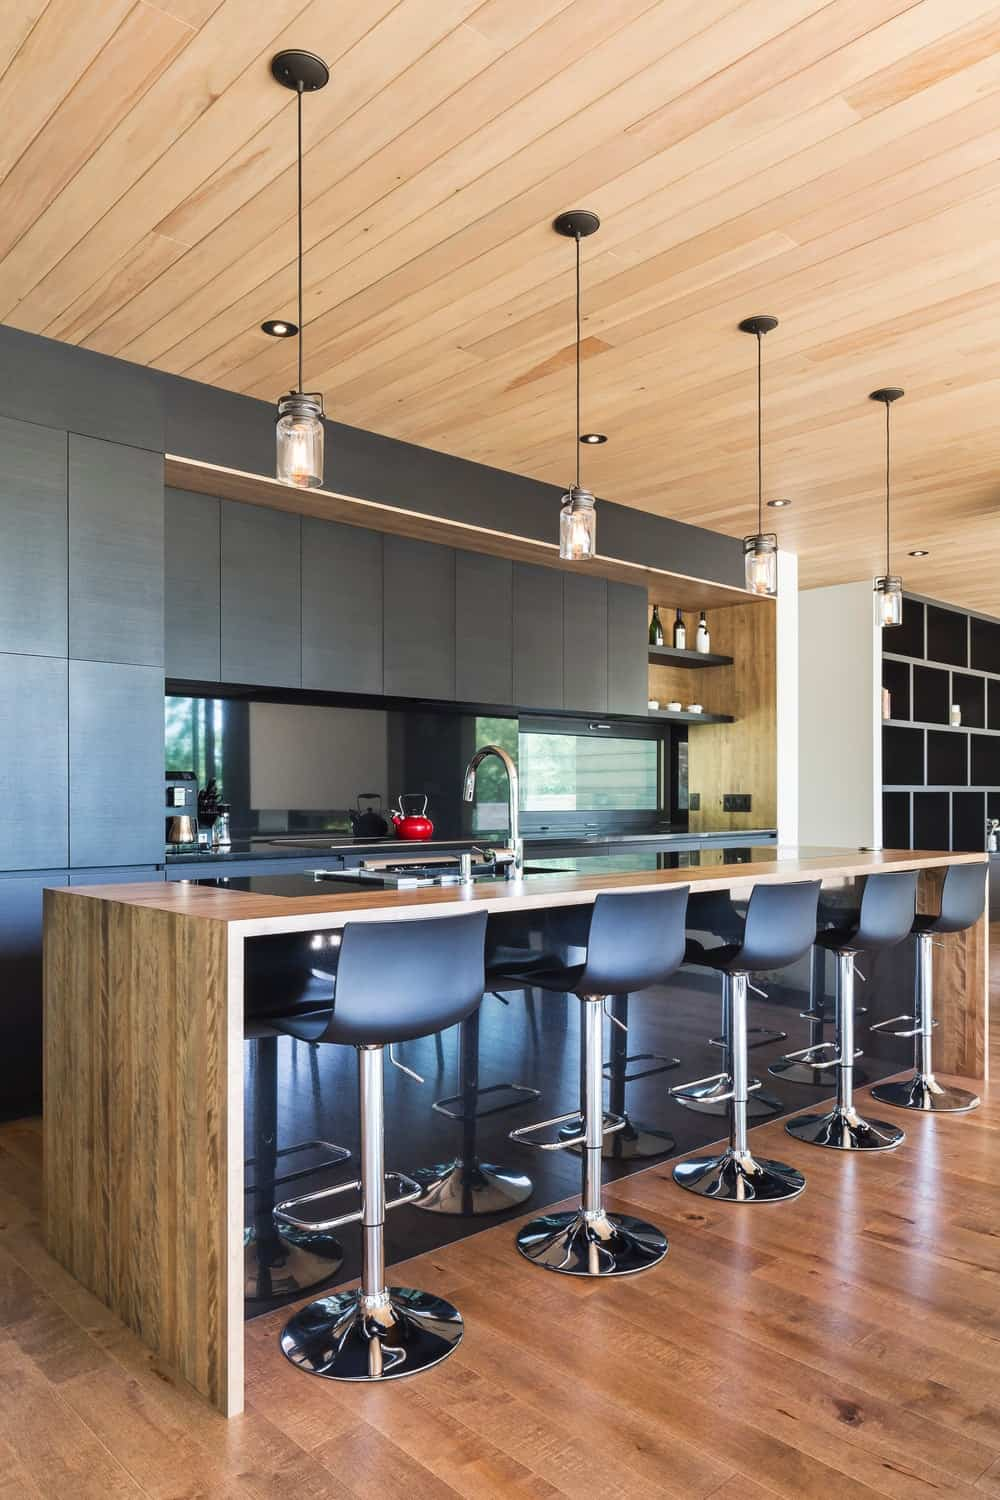 Contemporary kitchen with a long center island with laminated countertop. The space for breakfast bar offers stylish bar stools set on a hardwood flooring. The beautiful black cabinetry adds style to the awesome kitchen.